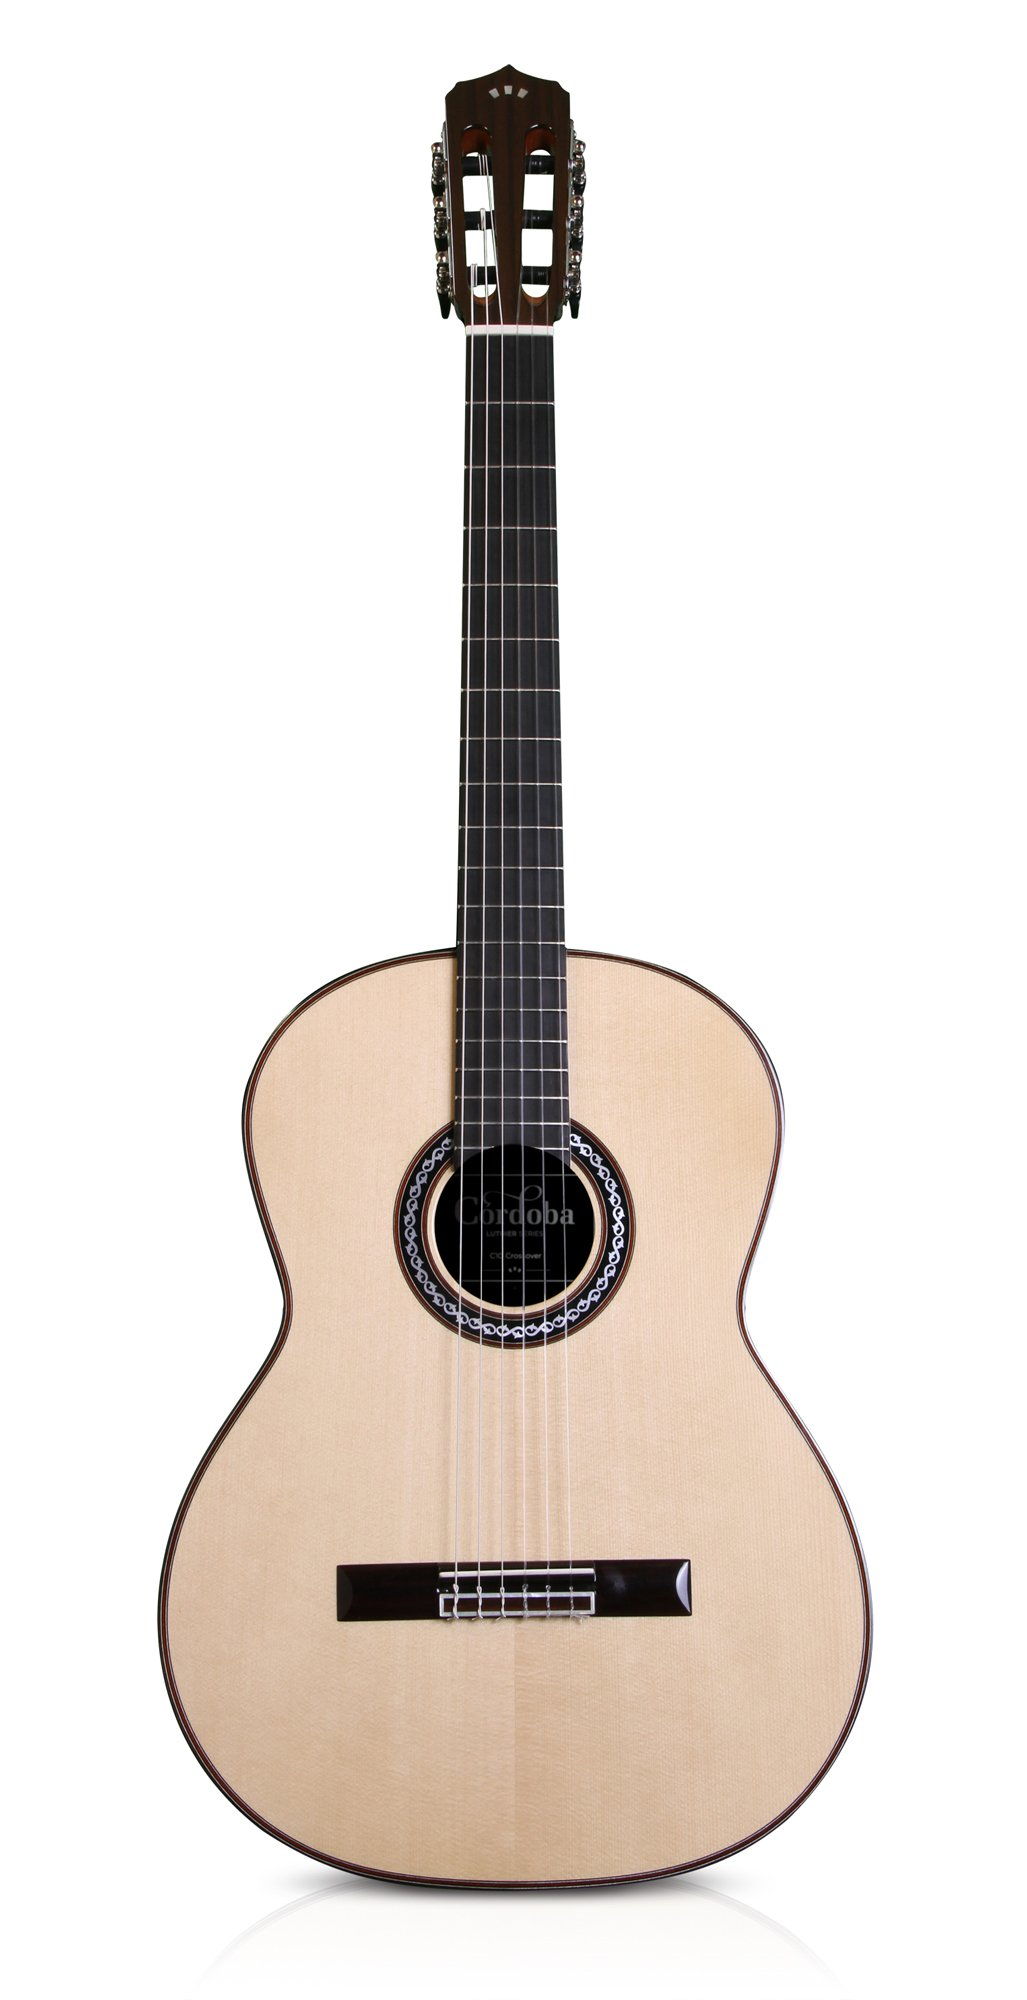 cordoba c10 crossover acoustic nylon string guitar guitar affinity. Black Bedroom Furniture Sets. Home Design Ideas